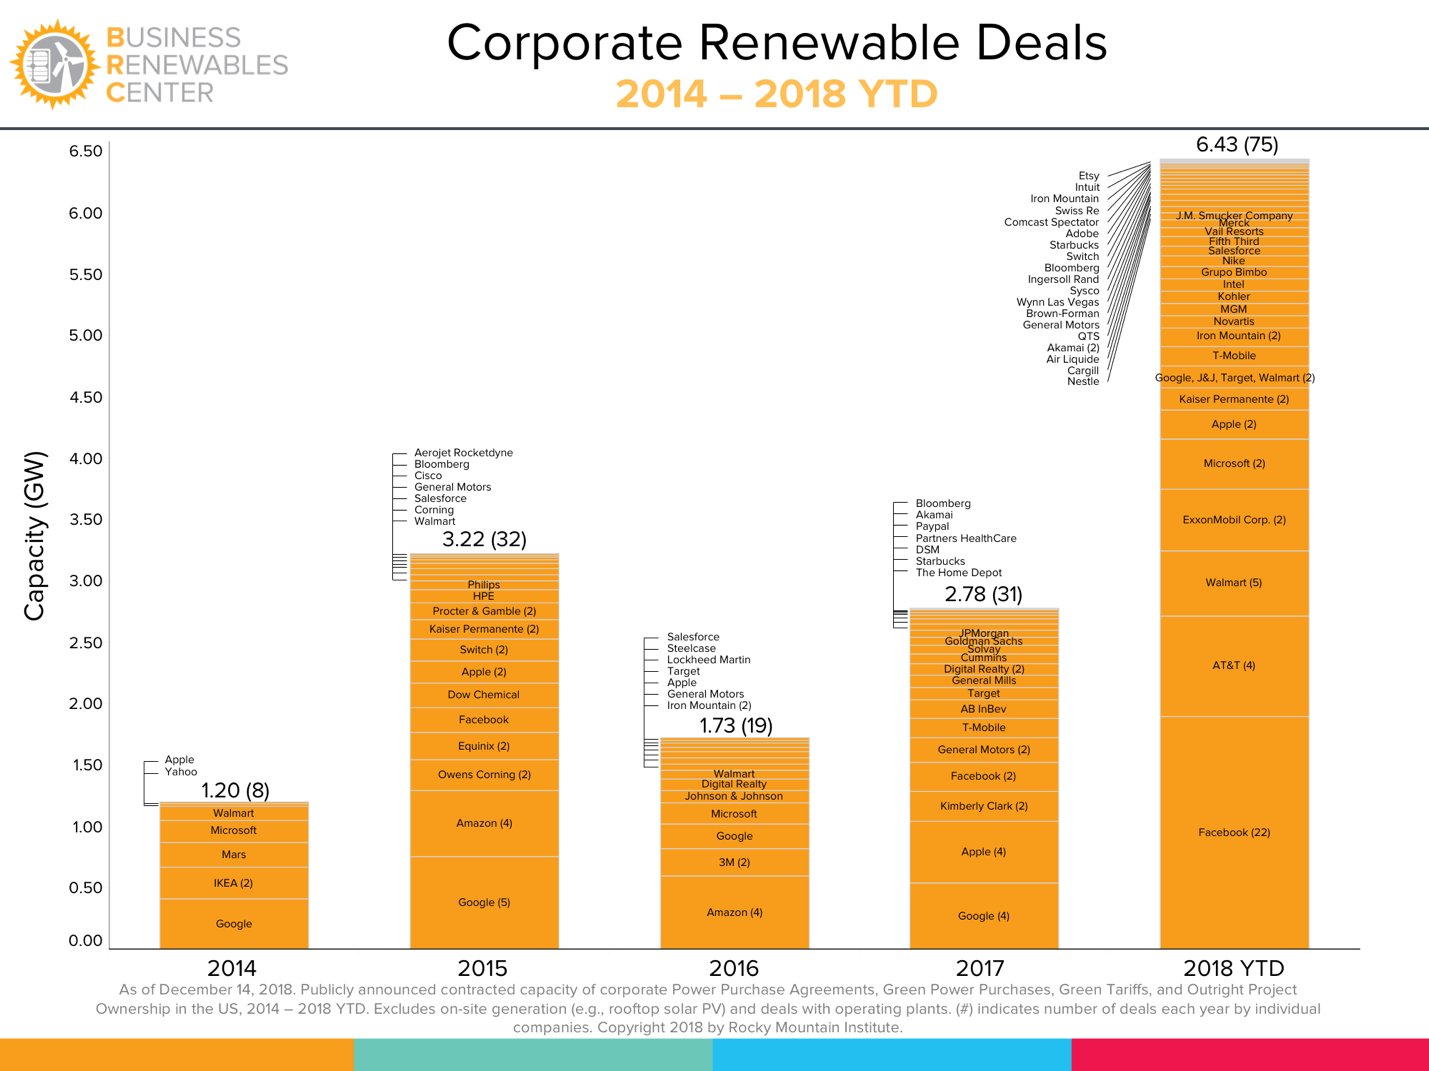 Leading U.S. Corporations on the Cusp of Achieving 100 Percent Renewable Energy Goals